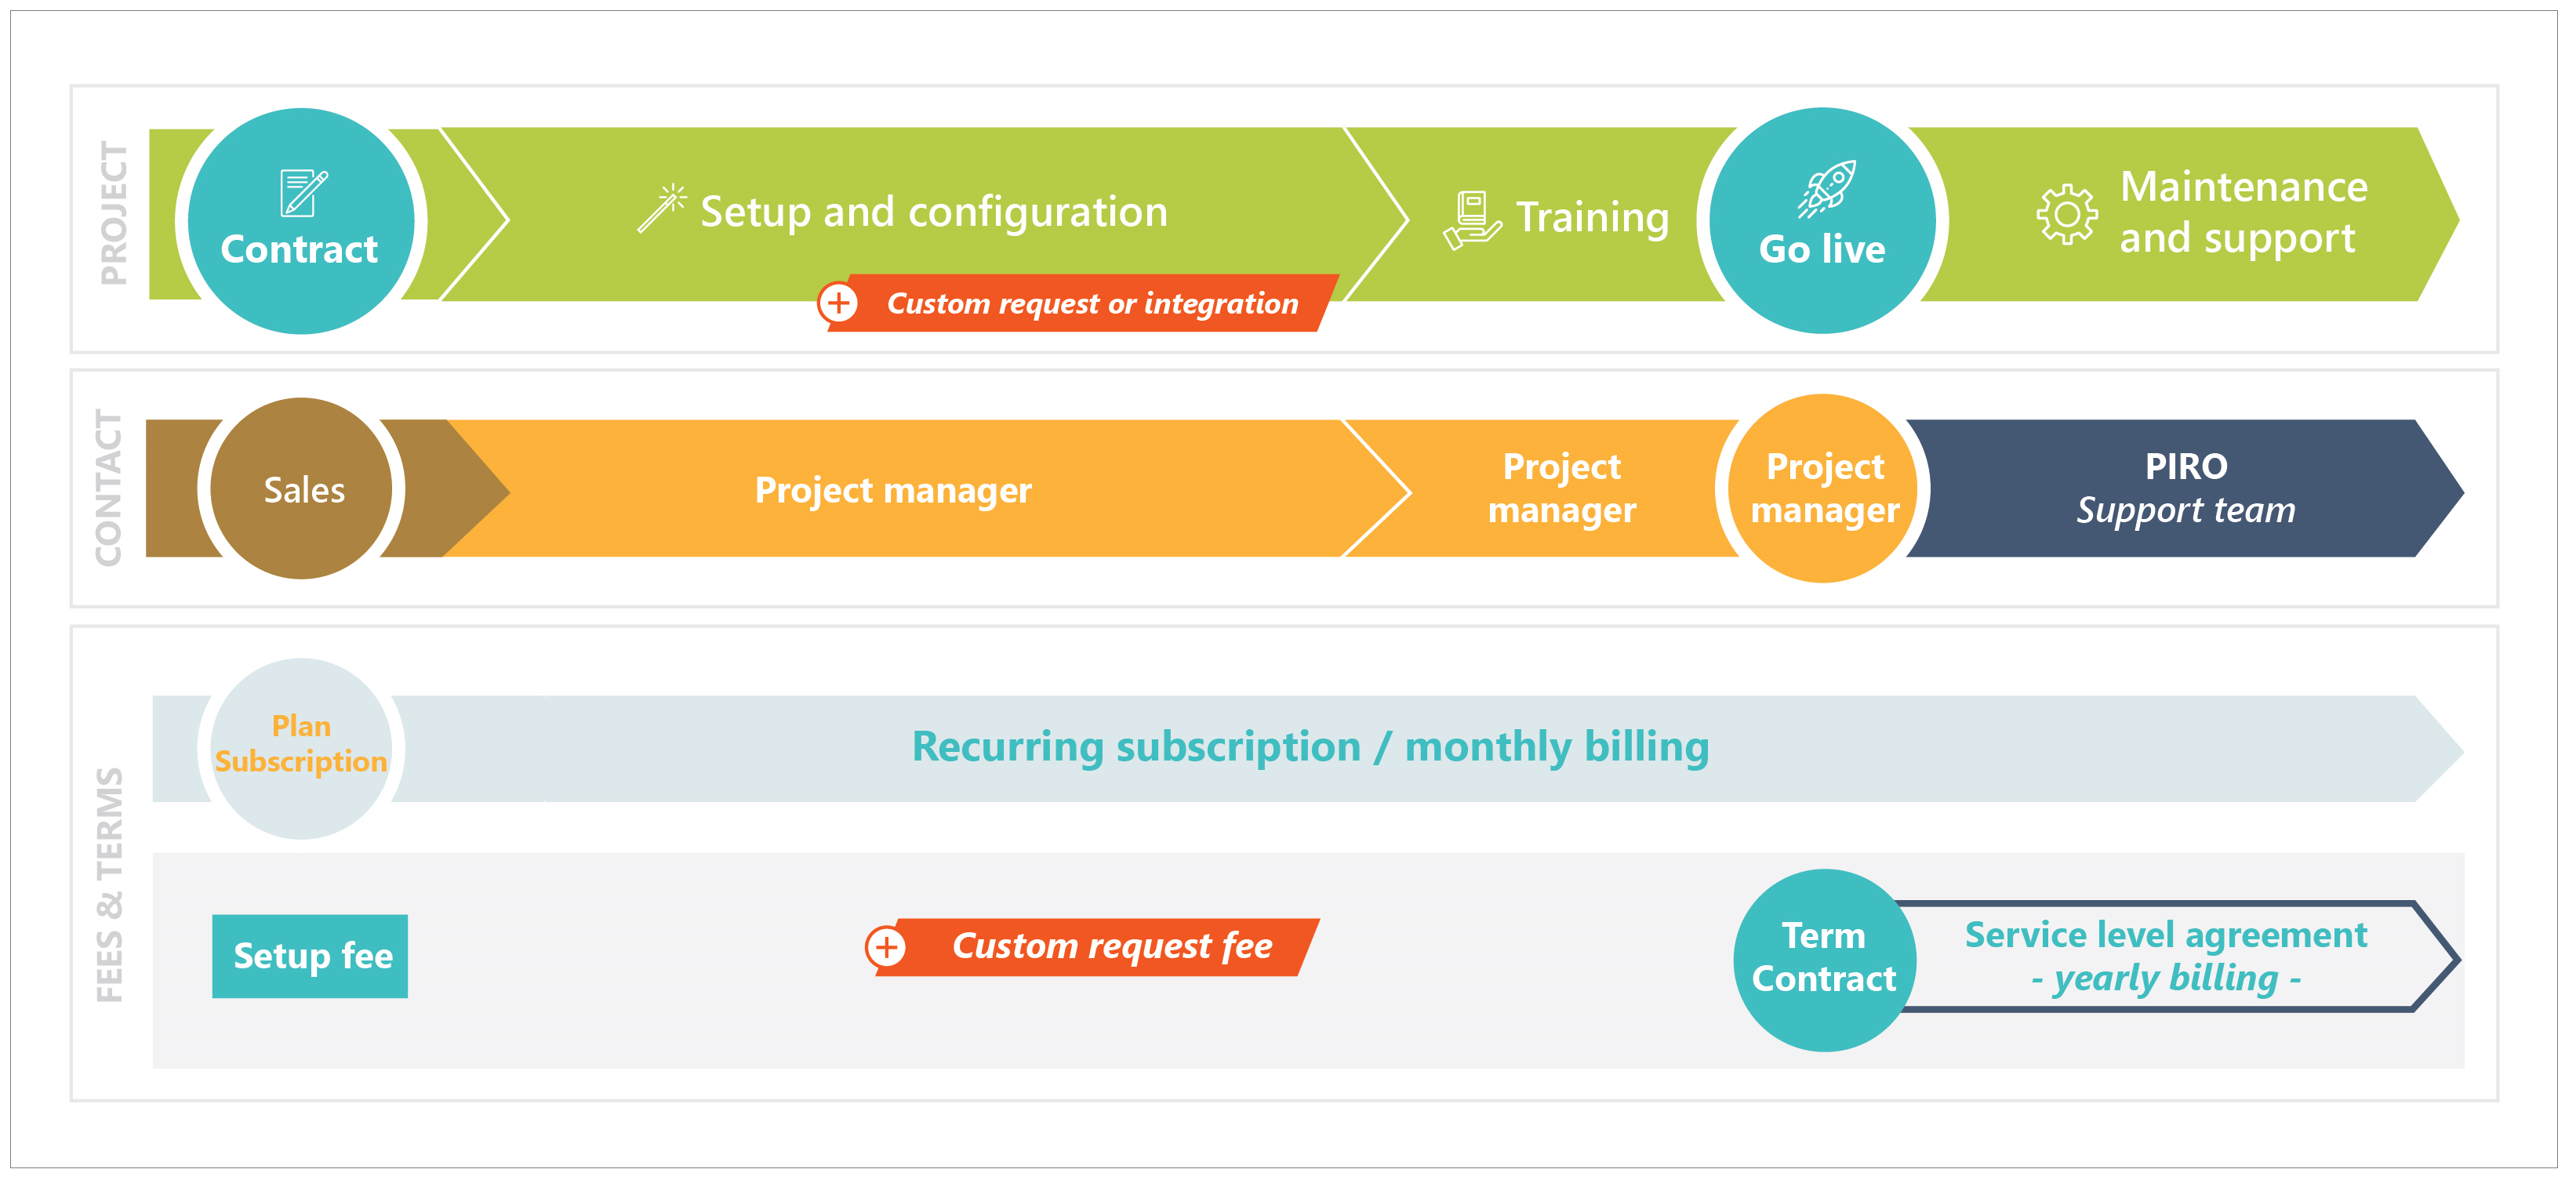 PIRO implementation phases